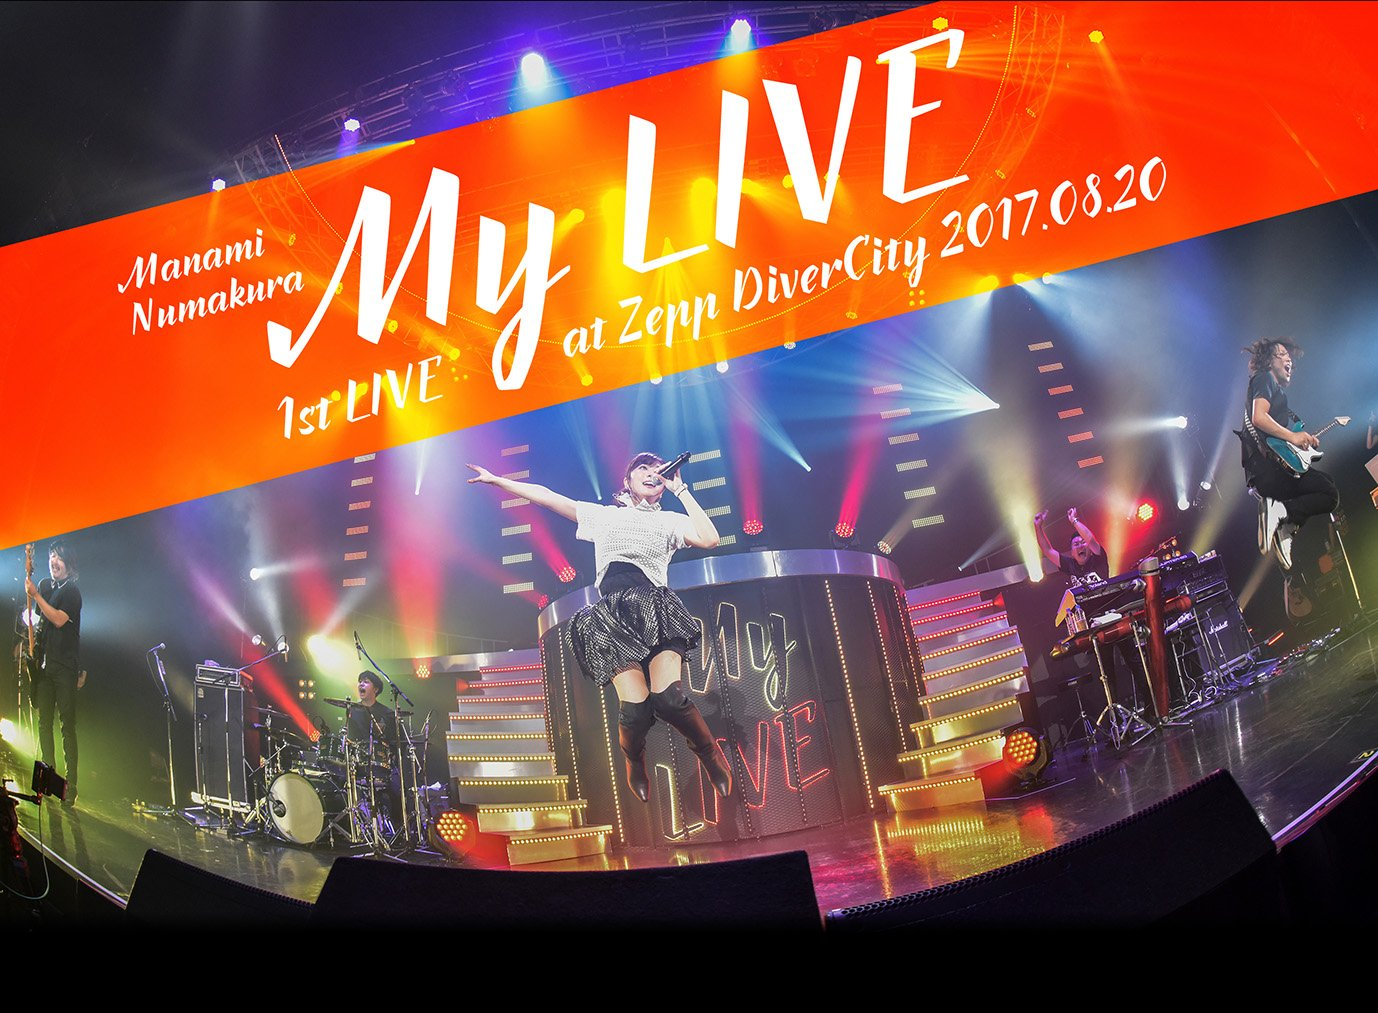 沼倉愛美/1st LIVE「My LIVE」at Zepp DiverCity 2017.08.20 [Blu-ray]